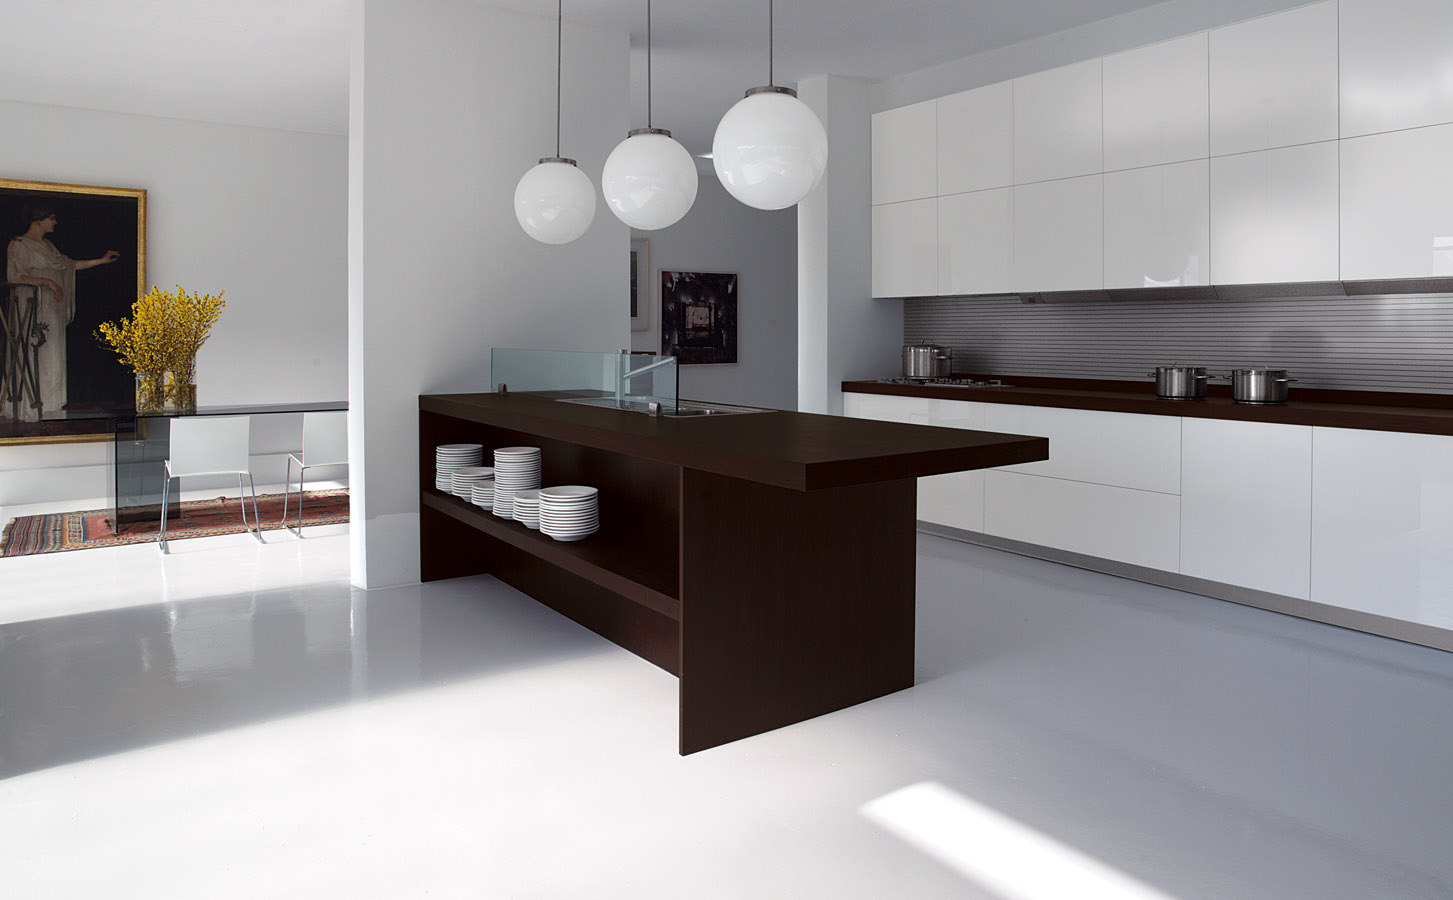 Contemporary kitchen interiors afreakatheart for Interior designs ideas